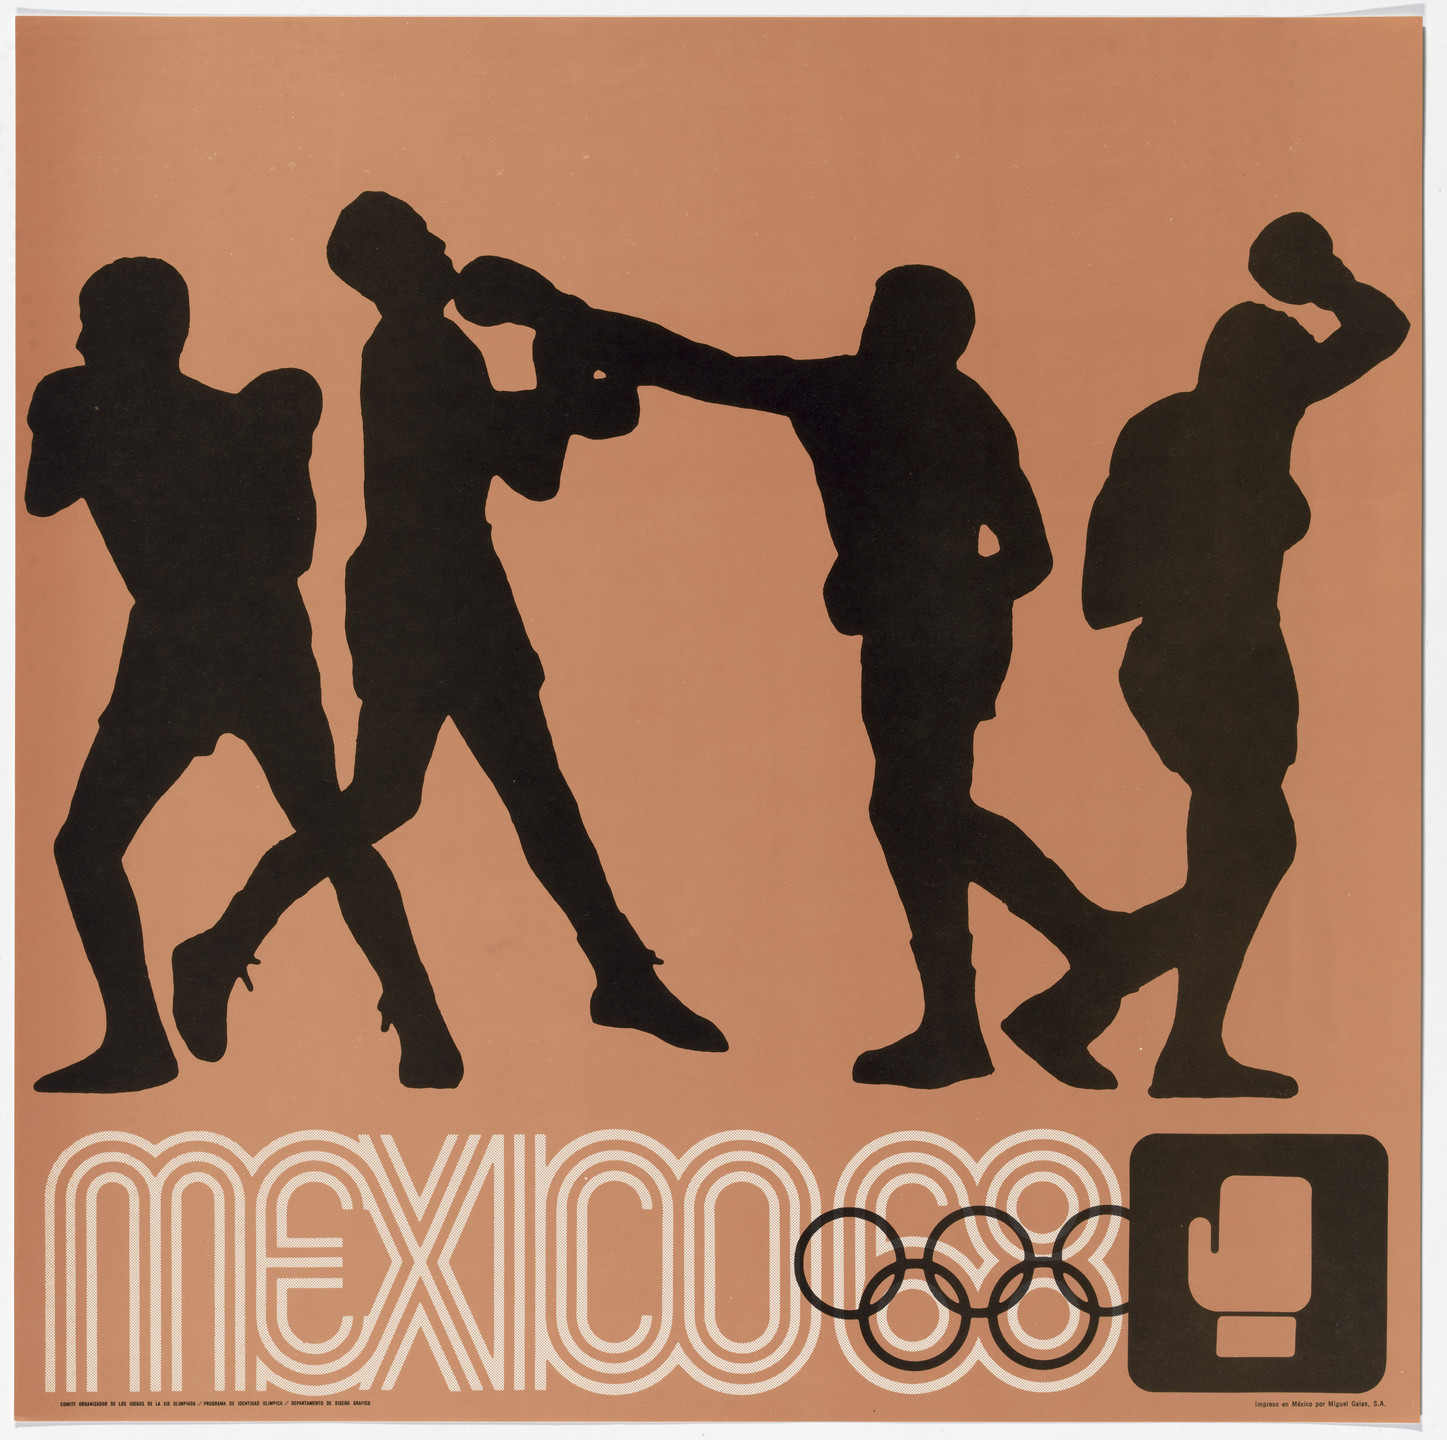 Lance Wyman, Department of Publications and Urban Design, Organizing Committee of the XIX Olympiad. Mexico City 1968 Olympics: Boxing. c. 1968